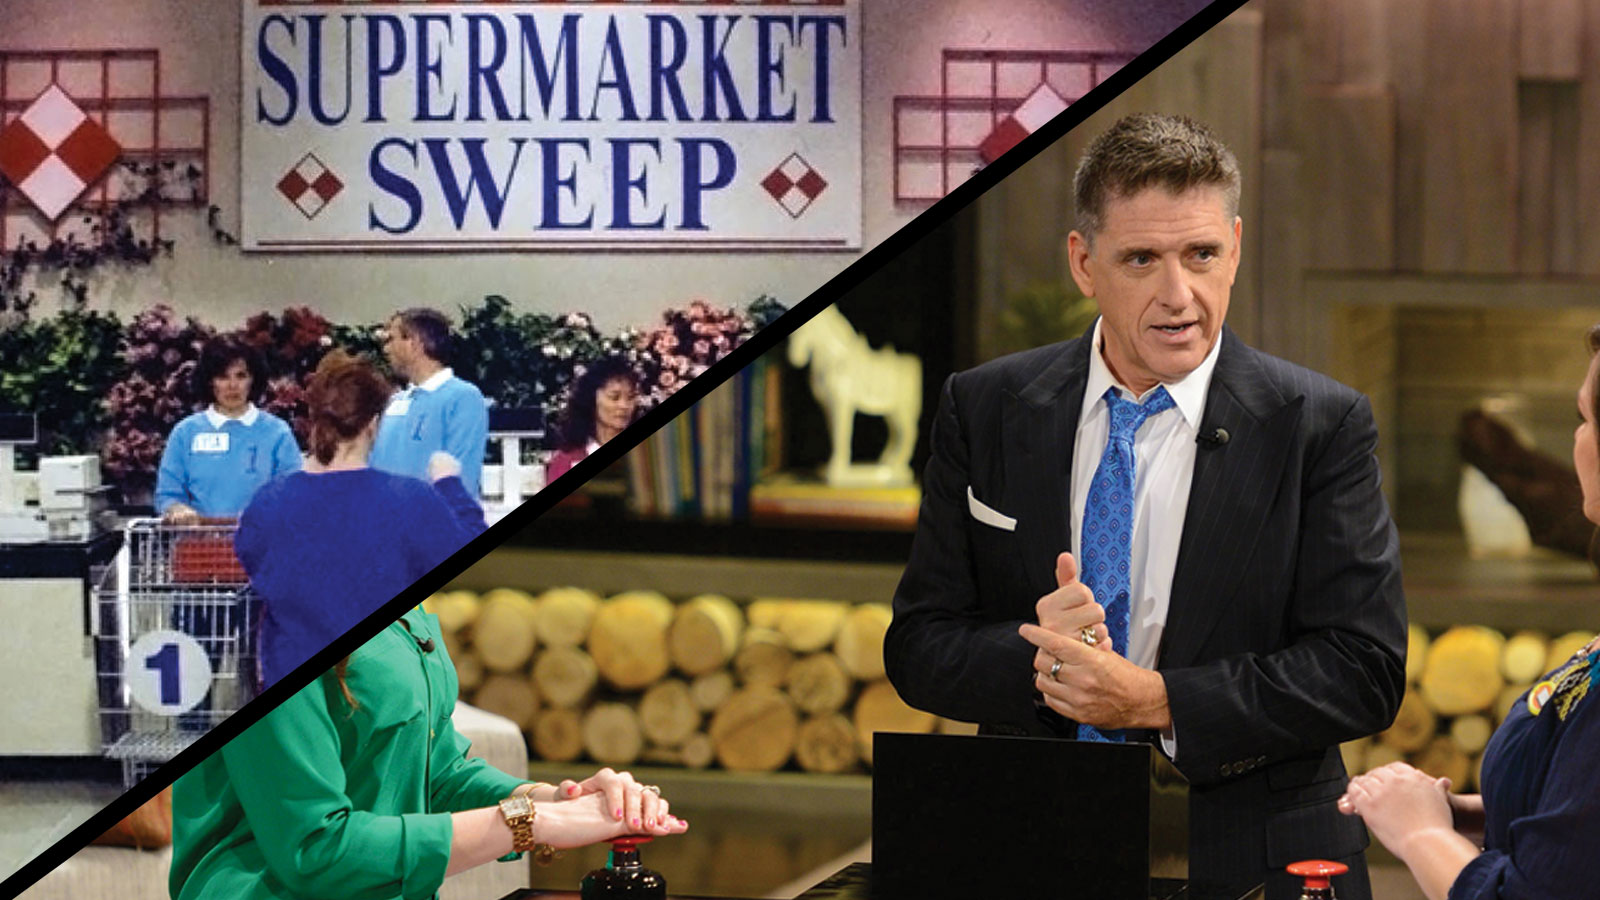 Buzzr Kicks Off 2018 with Supermarket Sweep and Celebrity